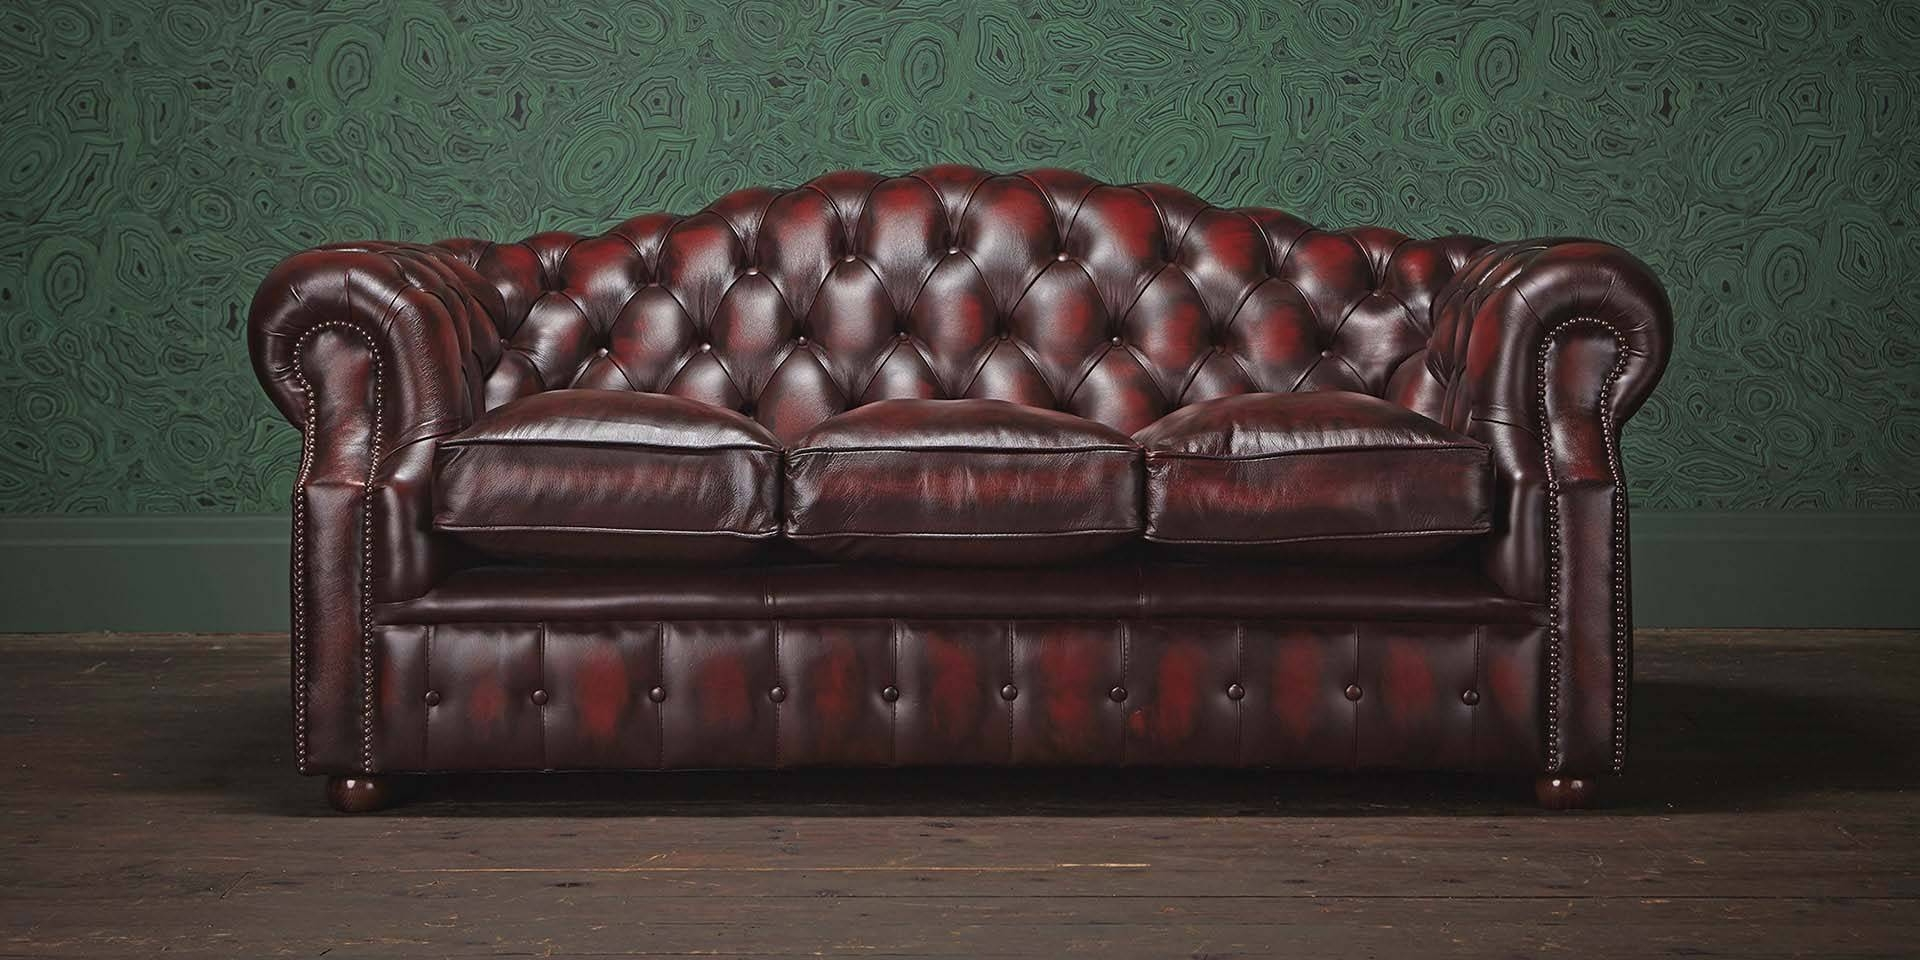 Chesterfield Sofas | Chesterfields Of England With Chesterfield Sofas (View 15 of 30)